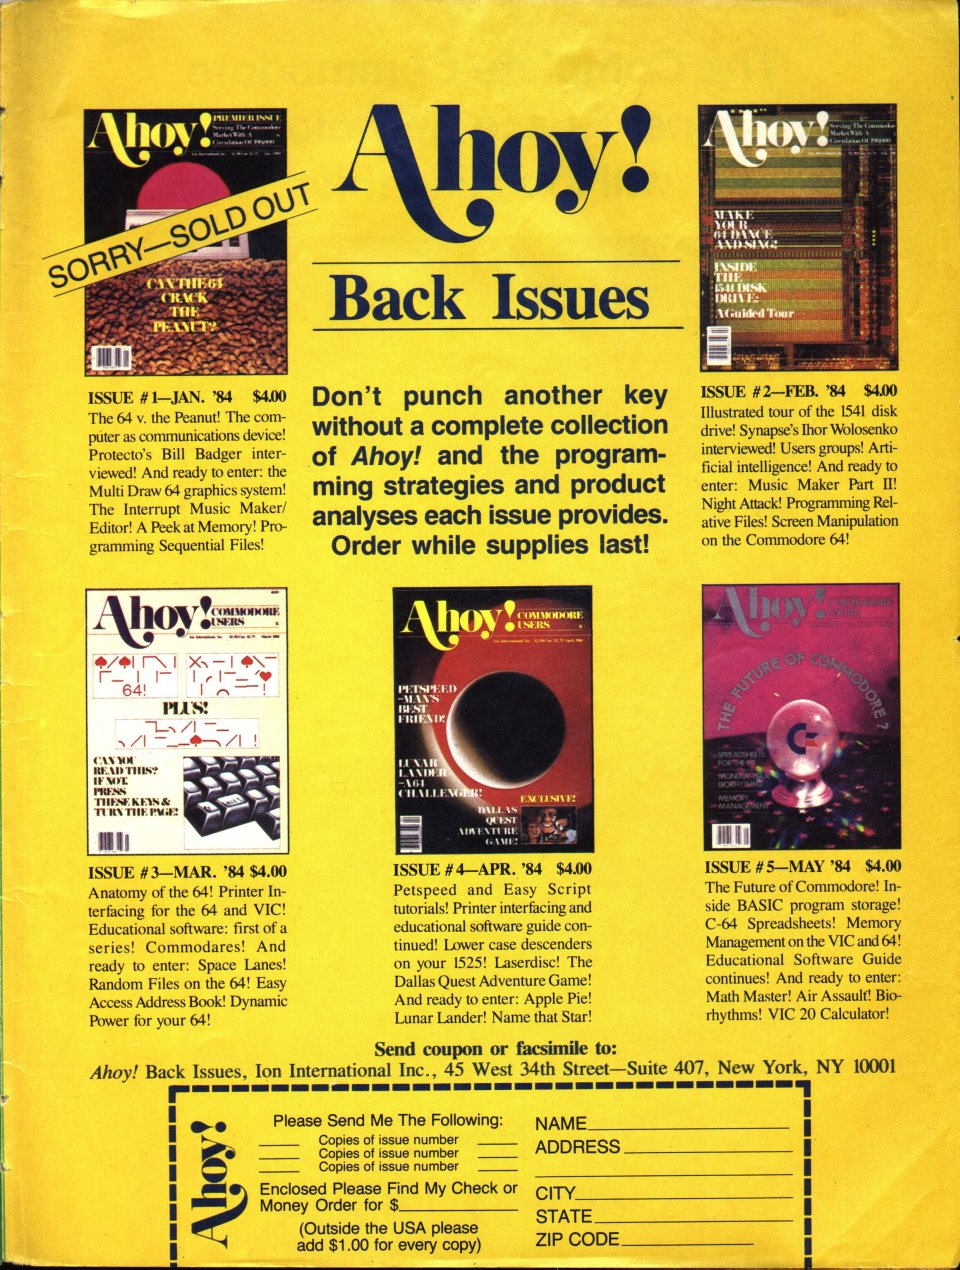 [Advertisement: Ahoy! Back Issues]